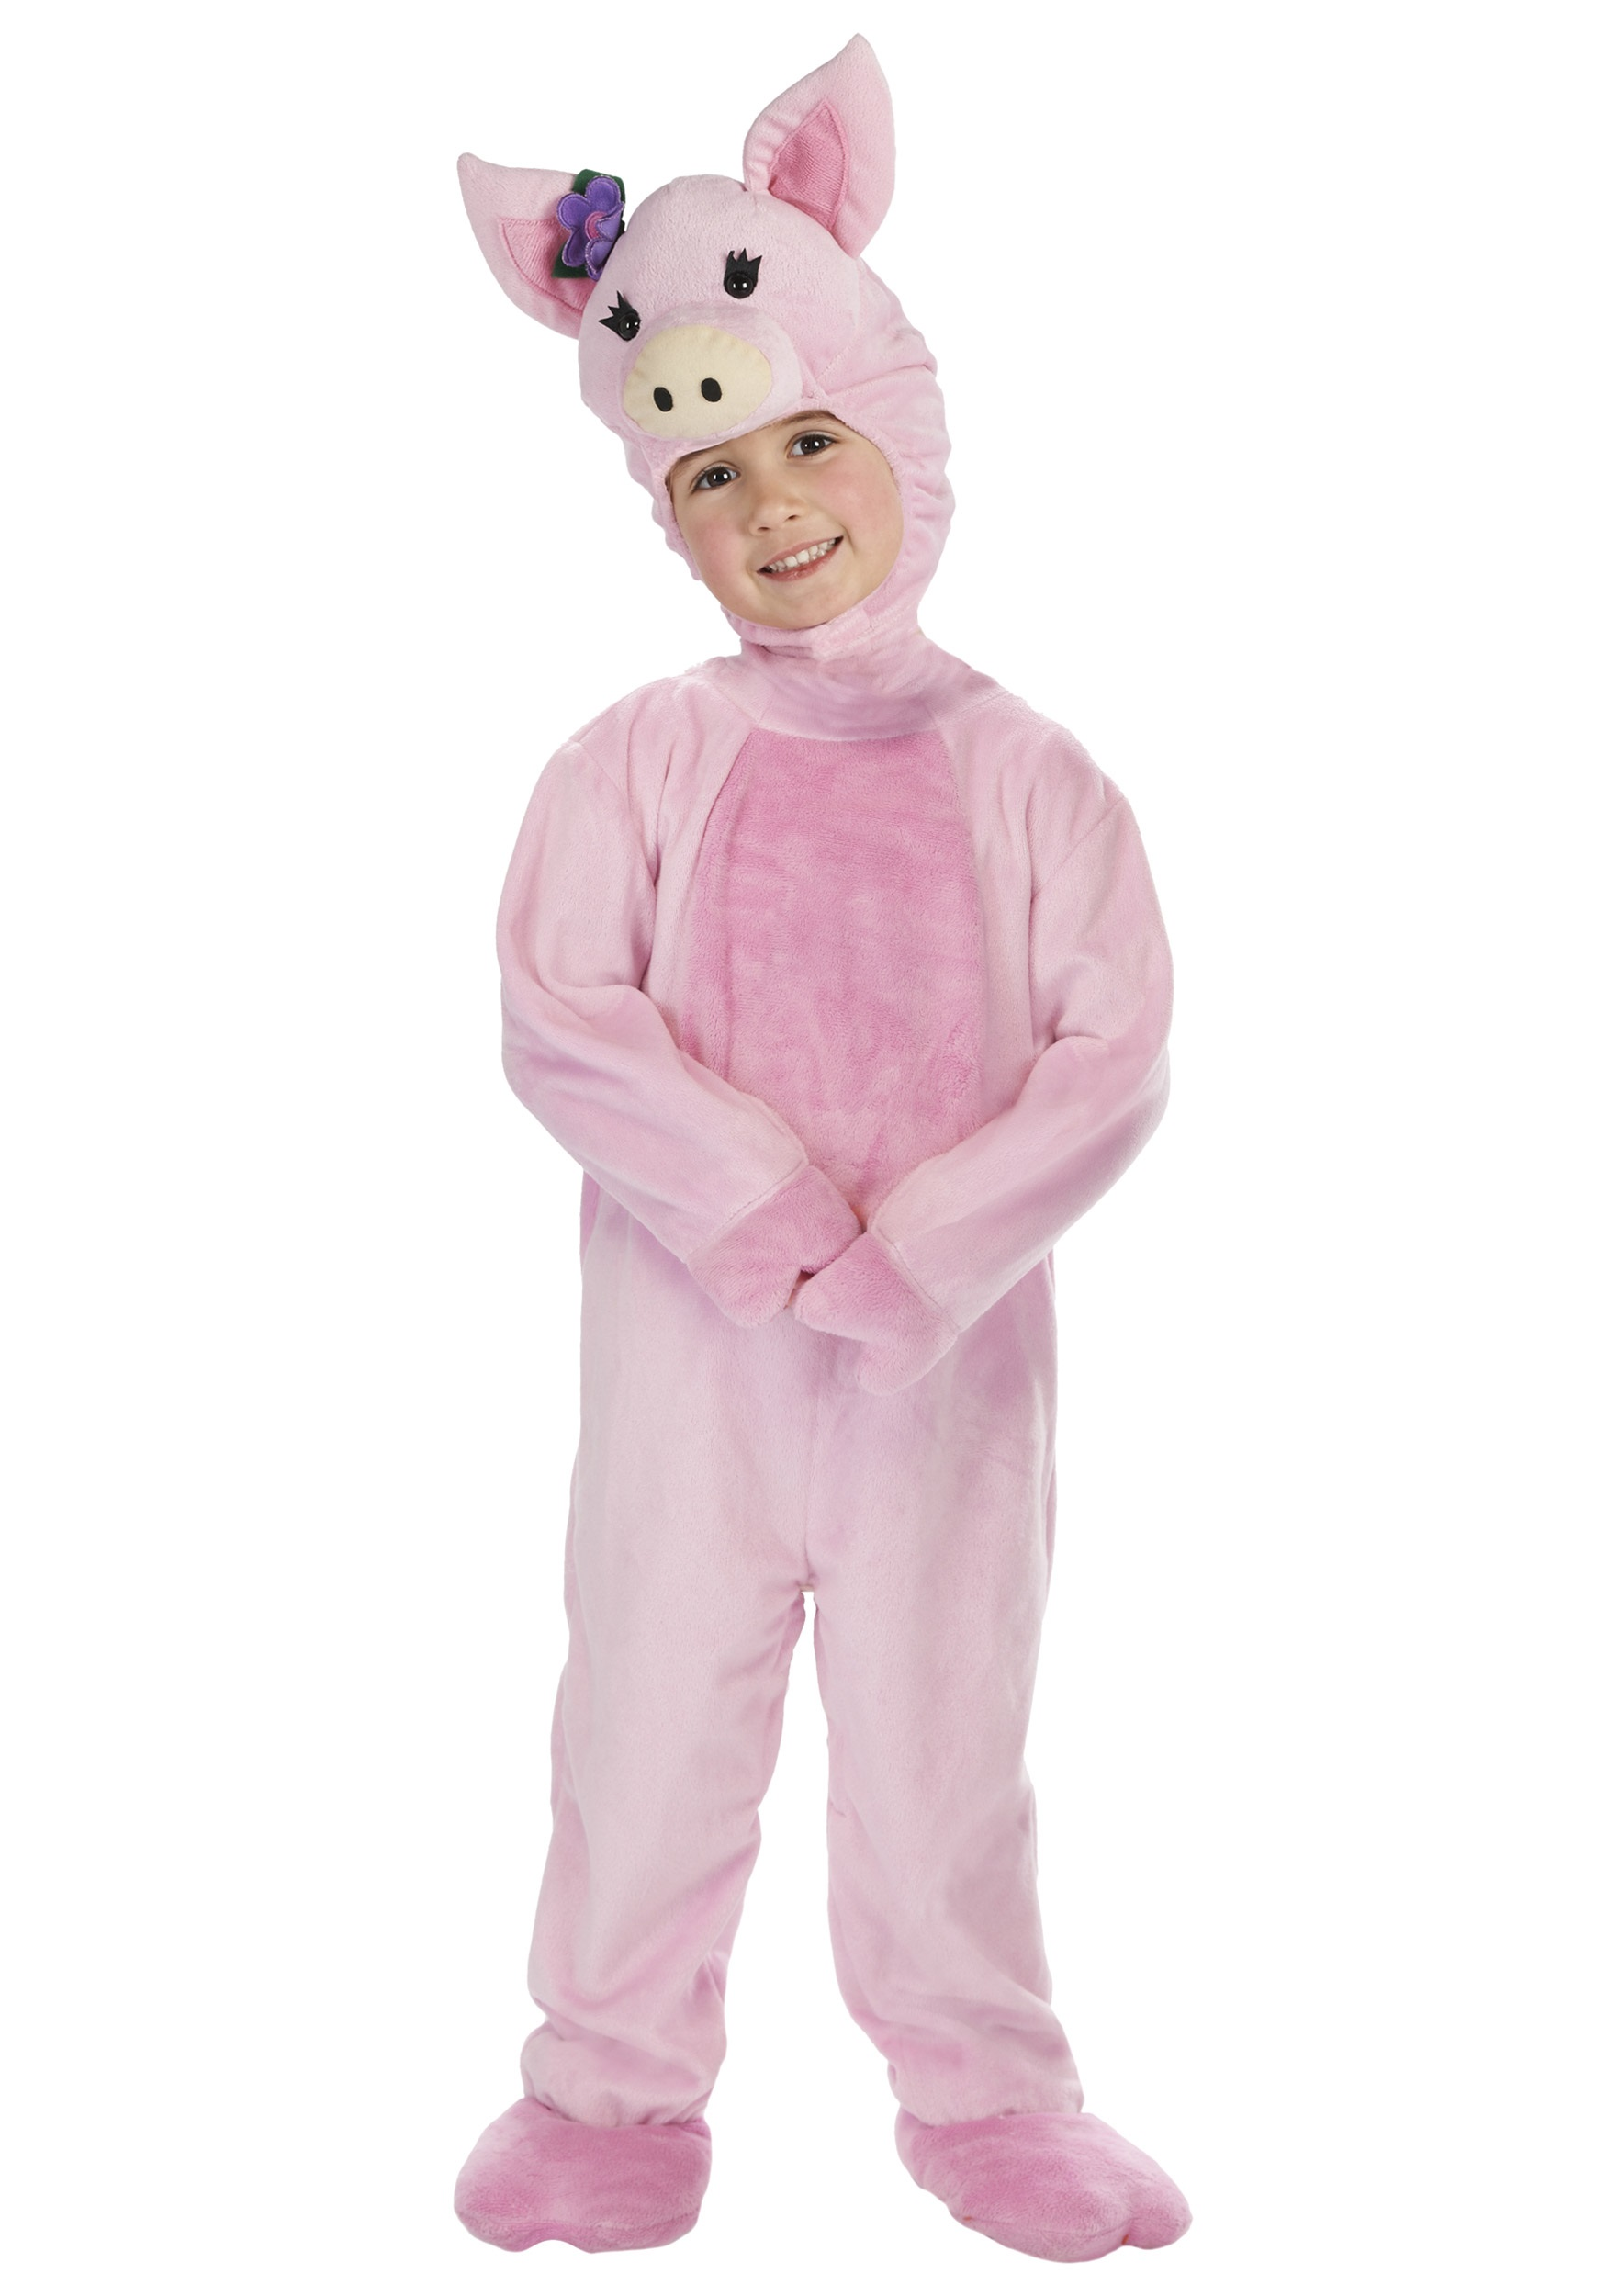 Toddler Pig Costume Halloween Costume Ideas 2018